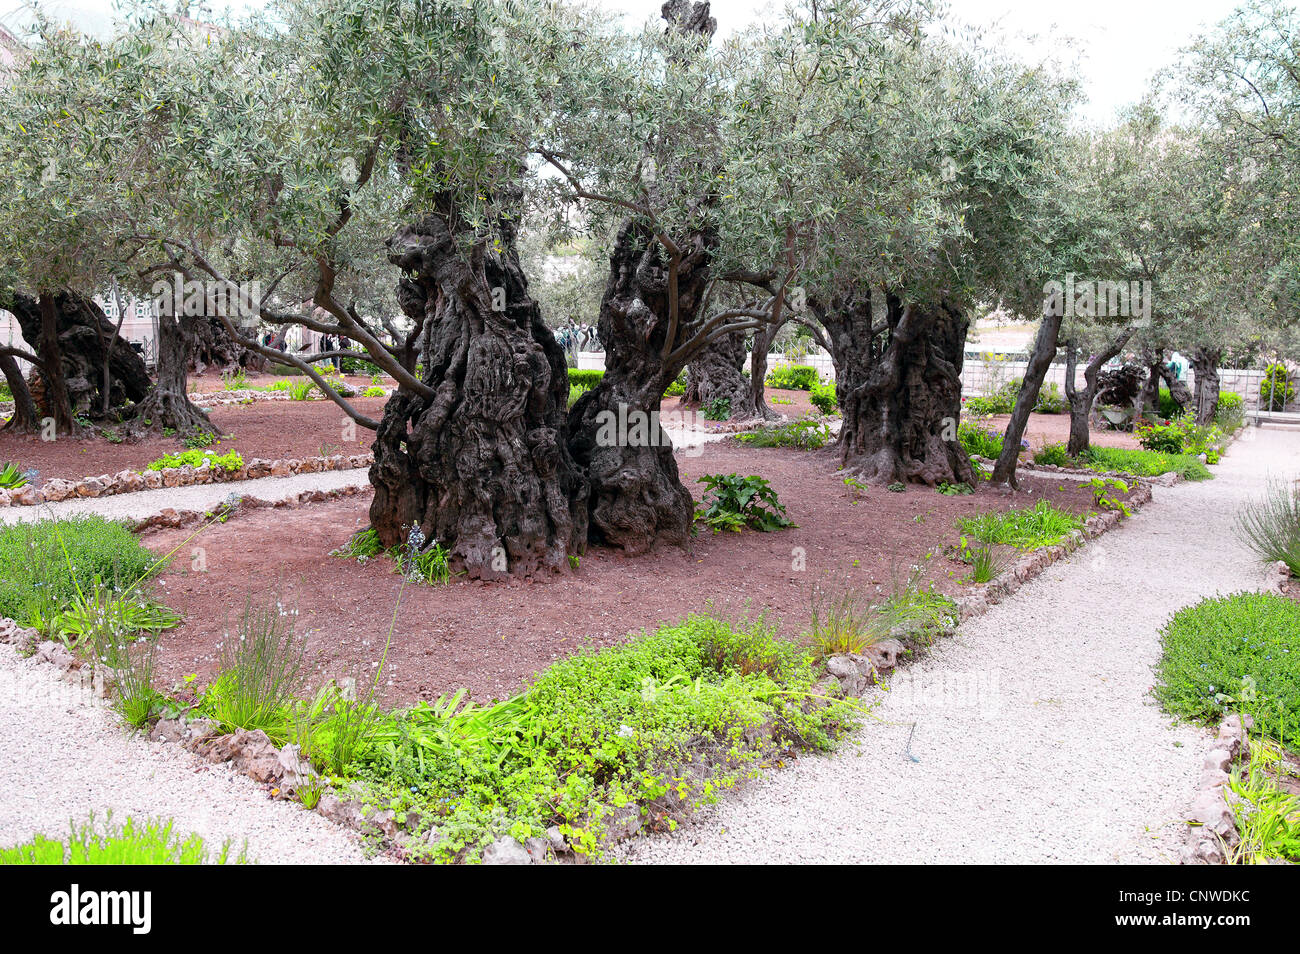 The ancient olive tree in gethsemane garden in jerusalem for Age olive trees garden gethsemane